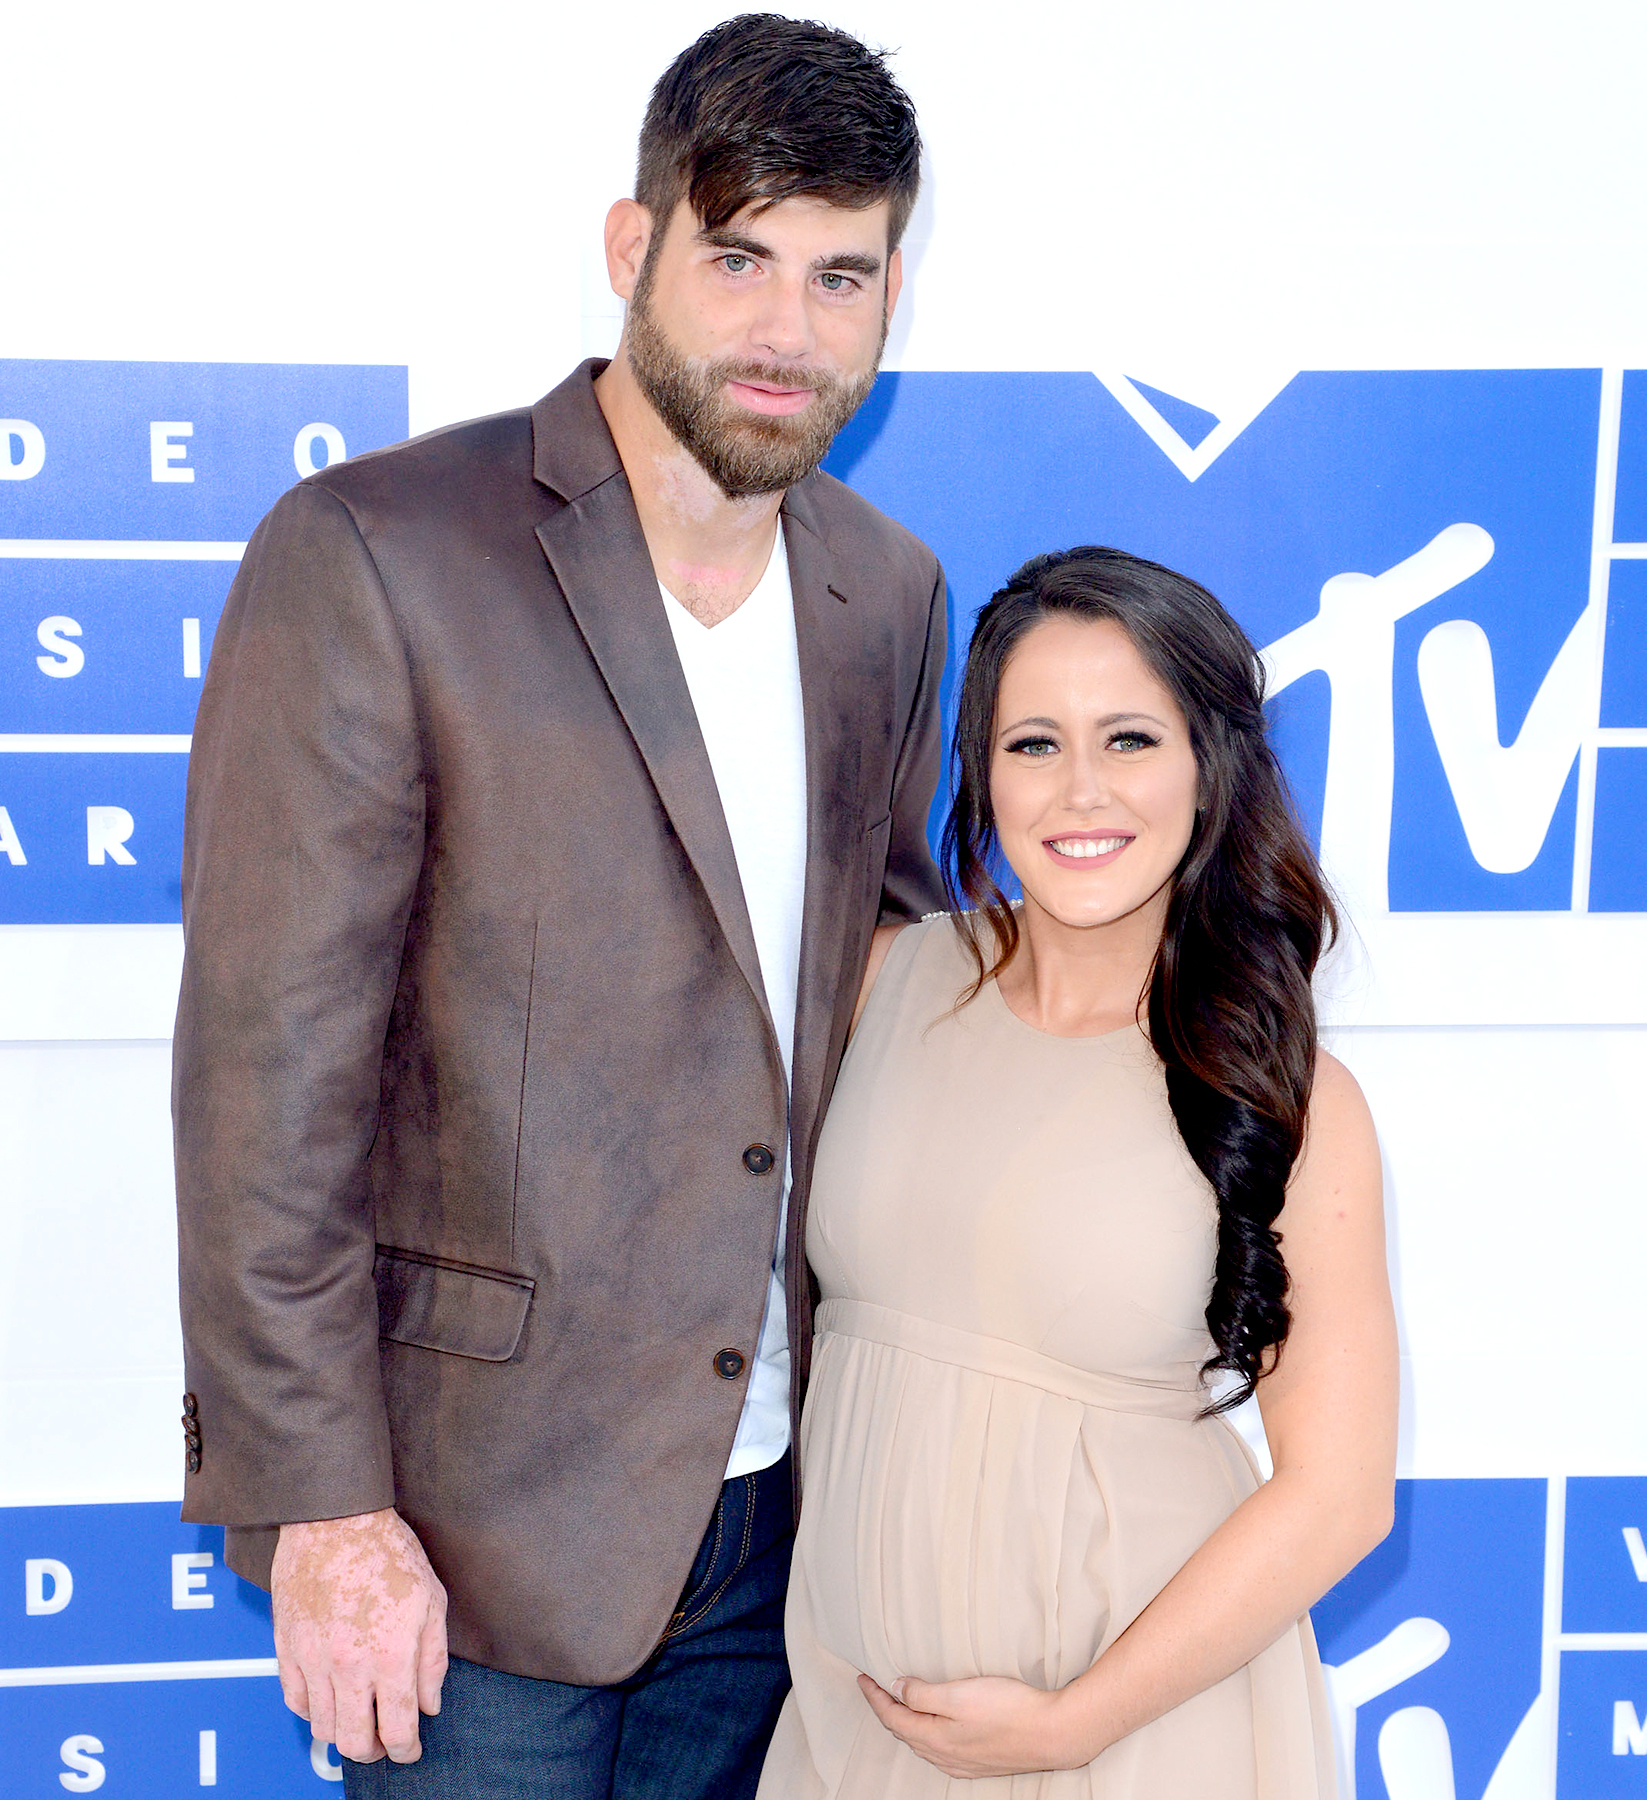 David Eason and Jenelle Evans arrive at the 2016 MTV Video Music Awards.